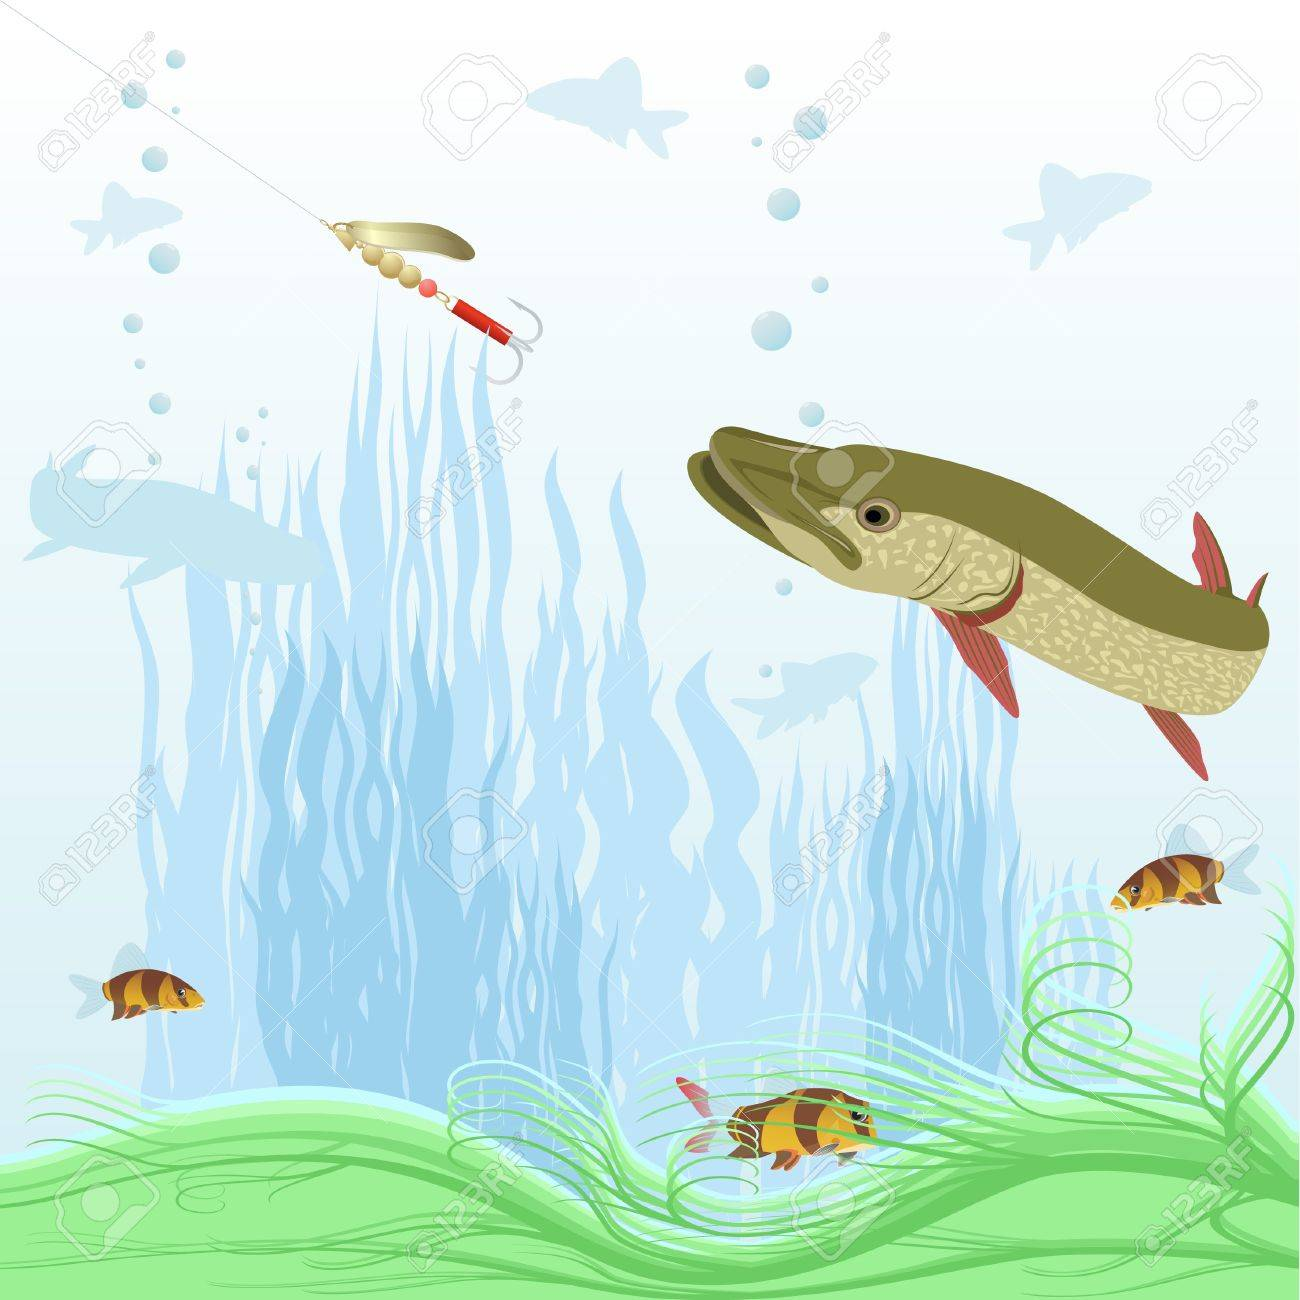 The illustration on the theme of the underwater world of aquatic plants and underwater creatures. Stock Vector - 12270740